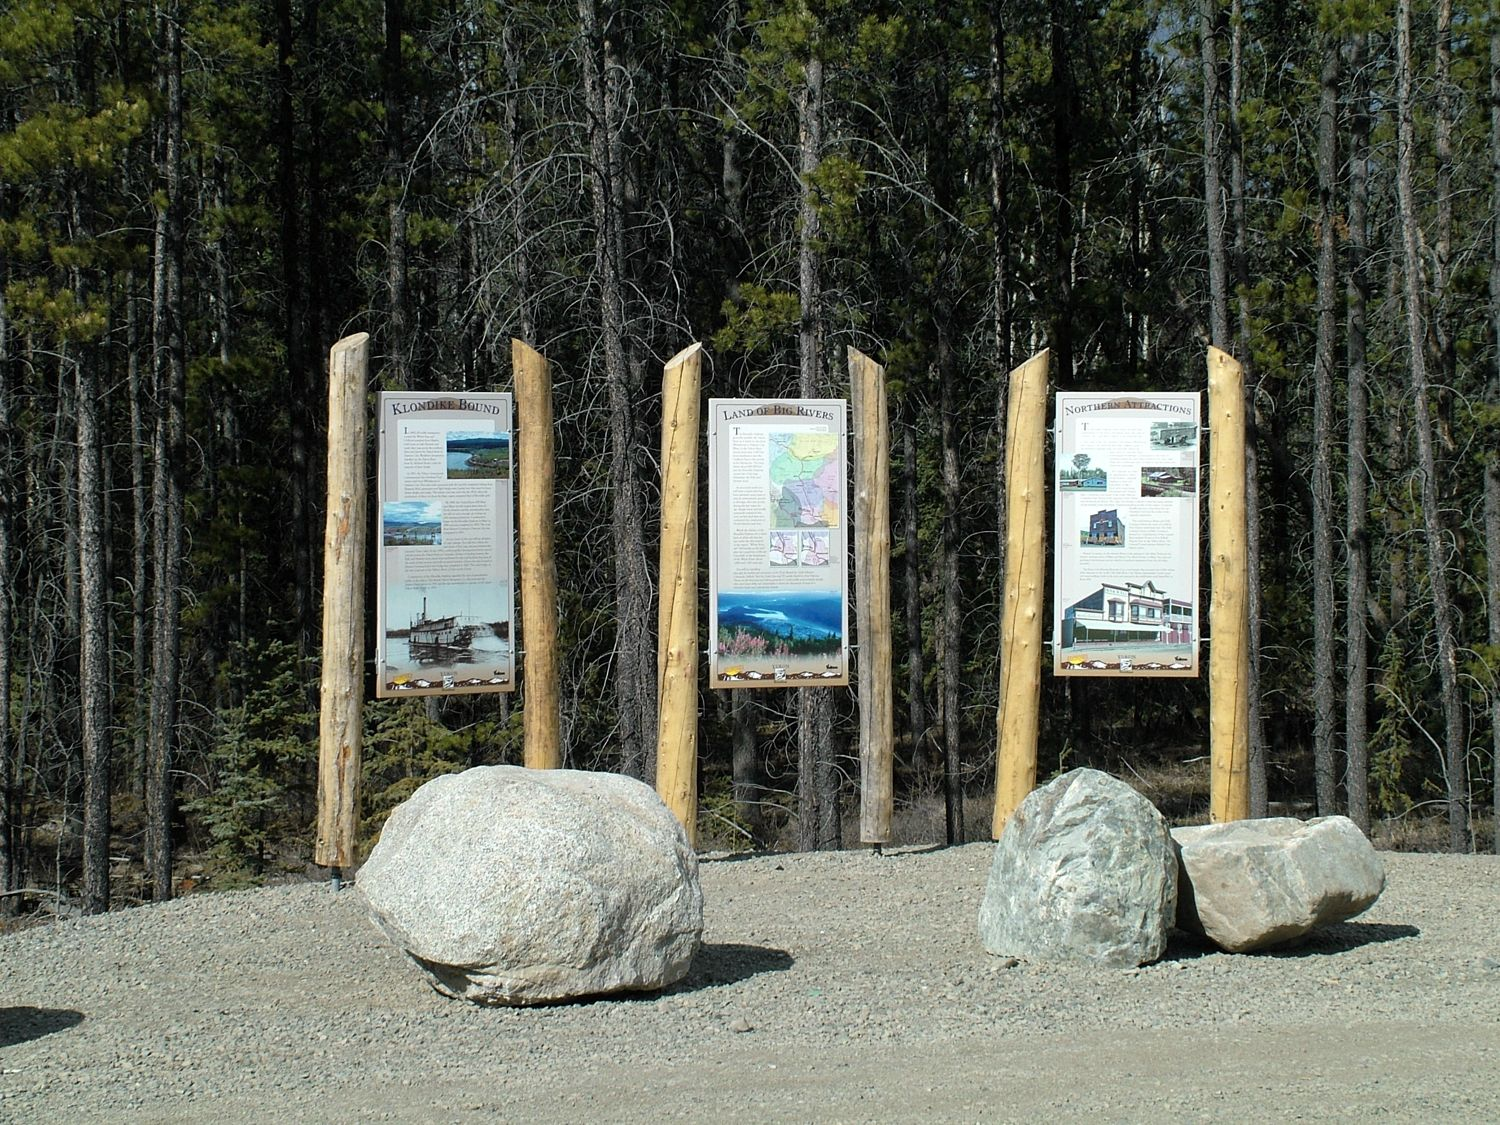 Junction of North Klondike Highway and Alaska Highway